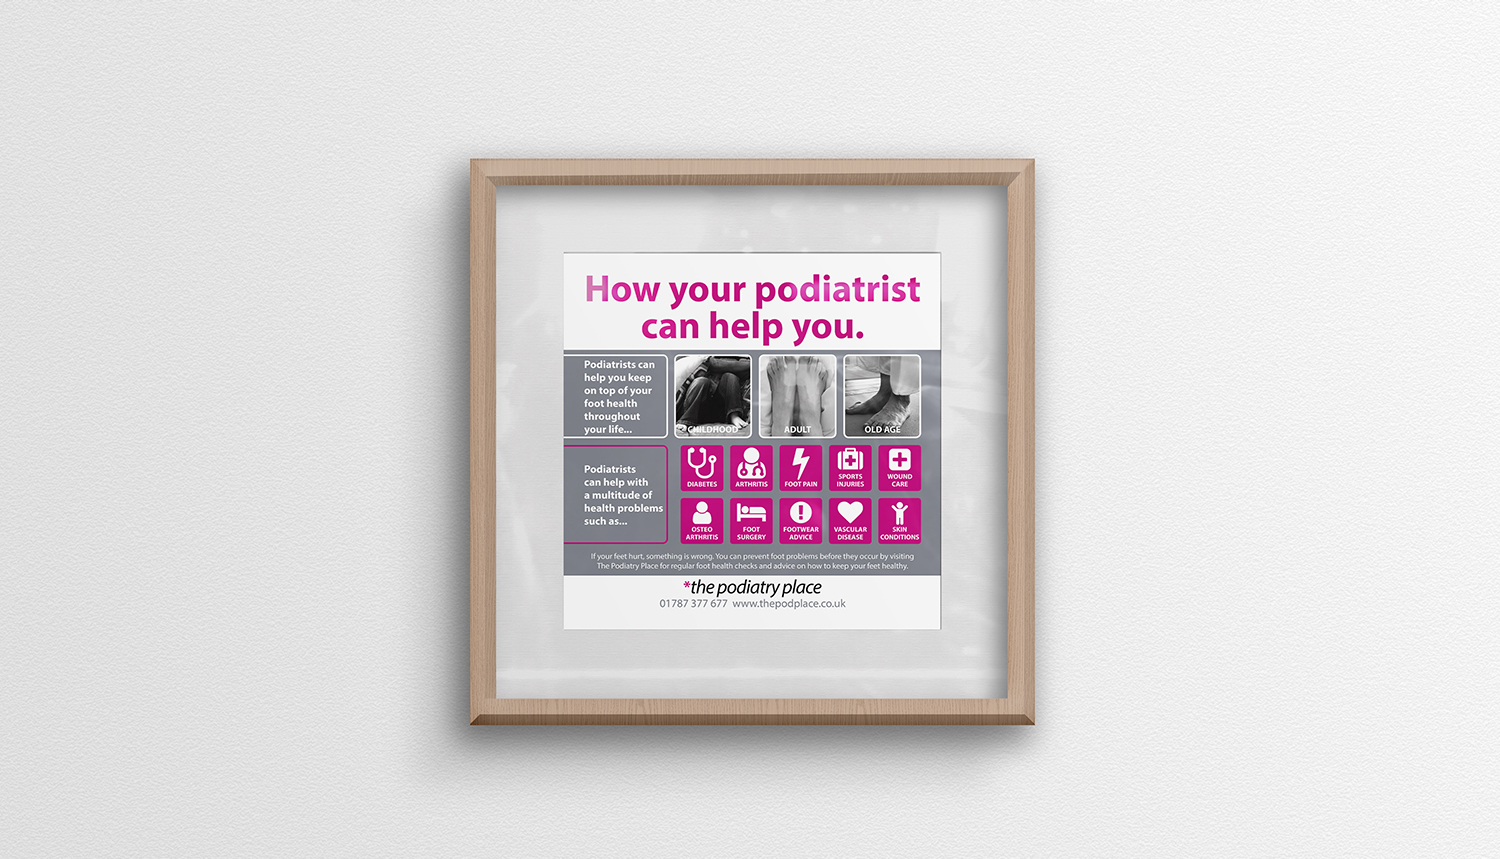 Poster design and print for The Podiatry Place